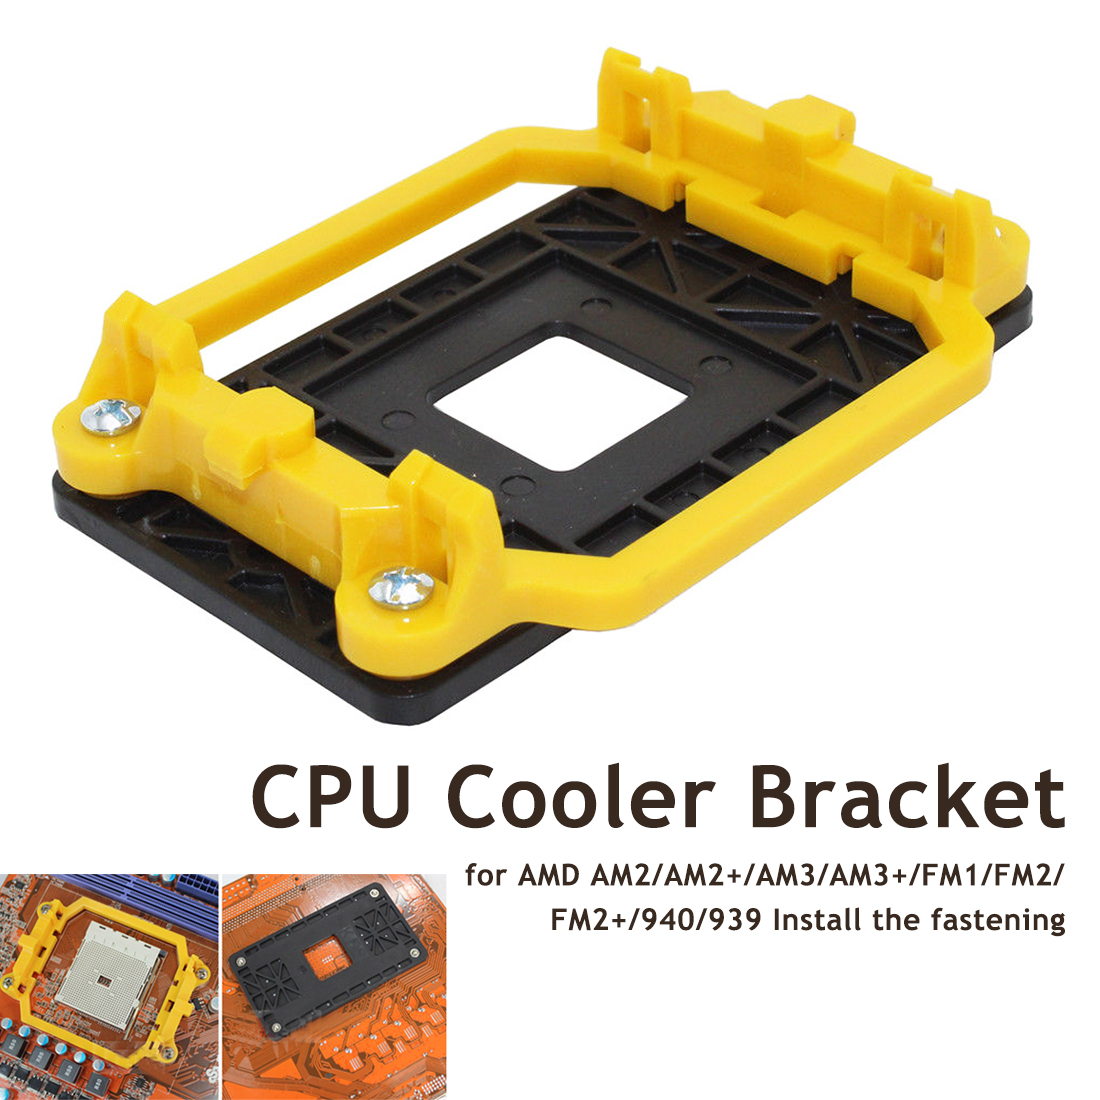 Etmakit Quality CPU Cooler Bracket Motherboard for AMD AM2/AM2+/AM3/AM3+/FM1/FM2/FM2+/940/939 Install the fastening image